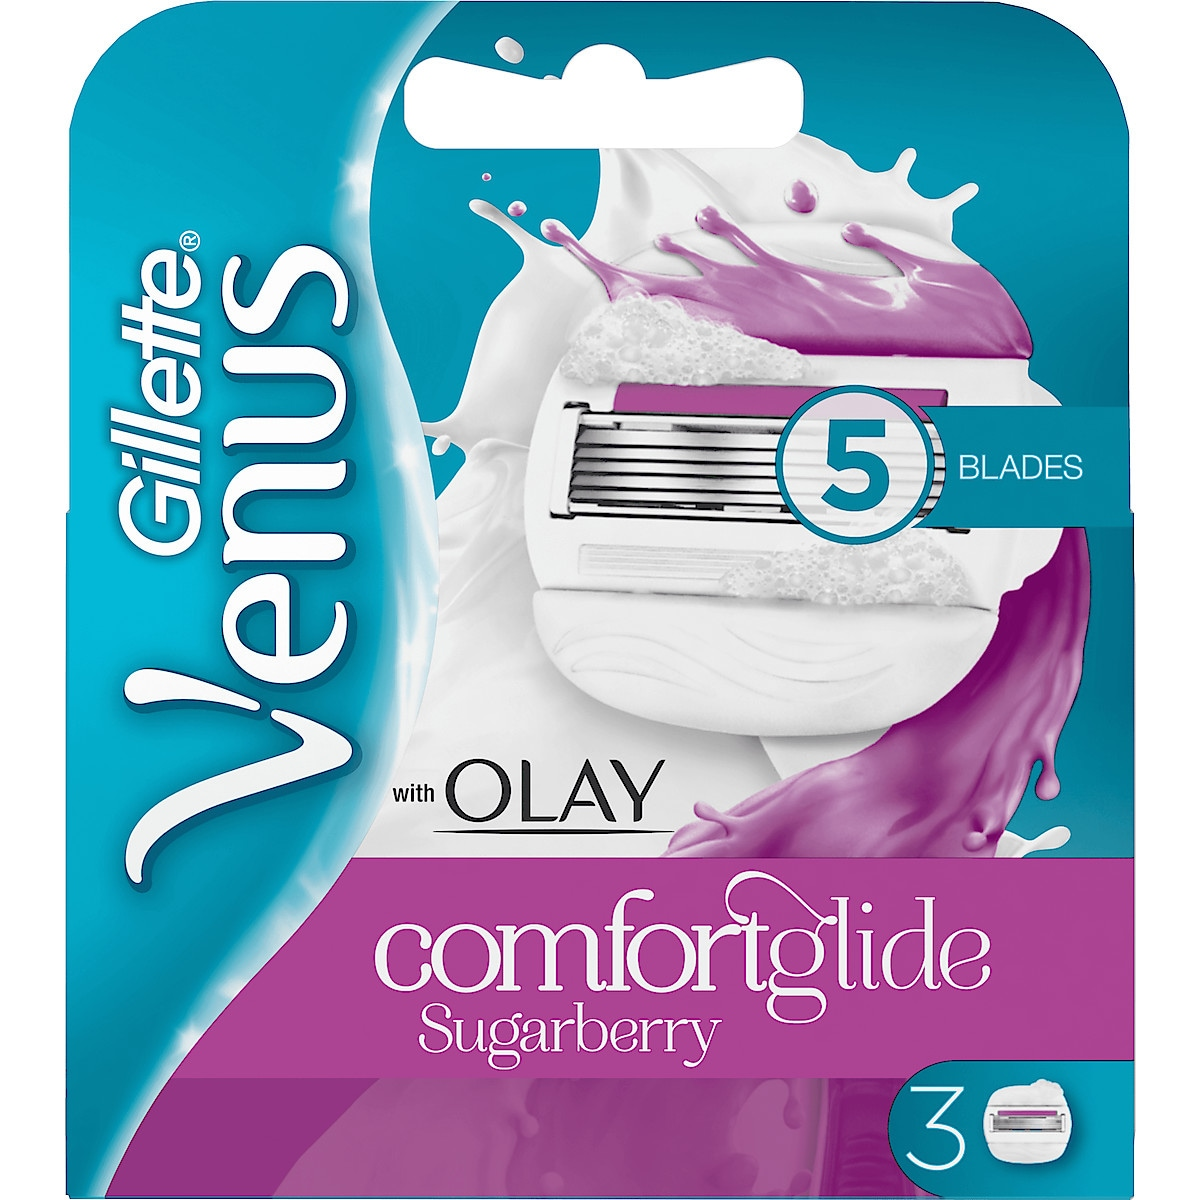 Rakblad Gillette Venus & Olay Sugarberry 3-pack